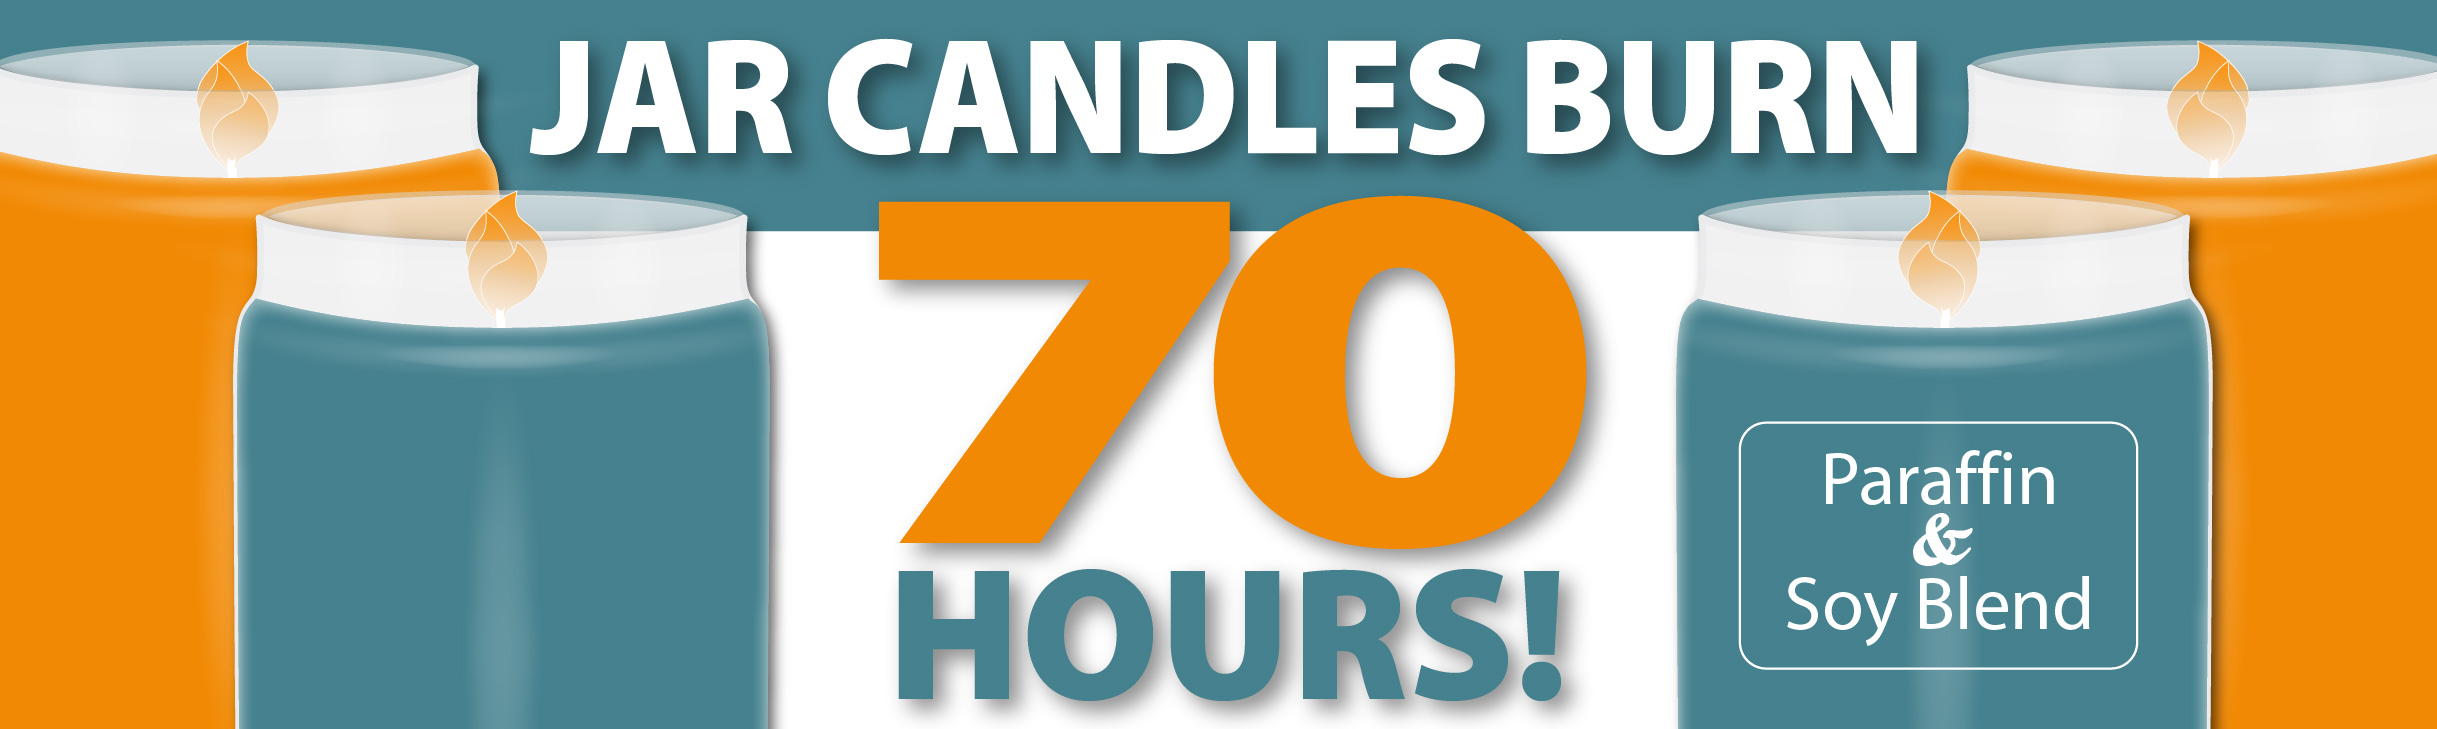 Jar Candles Burn 70 Hours